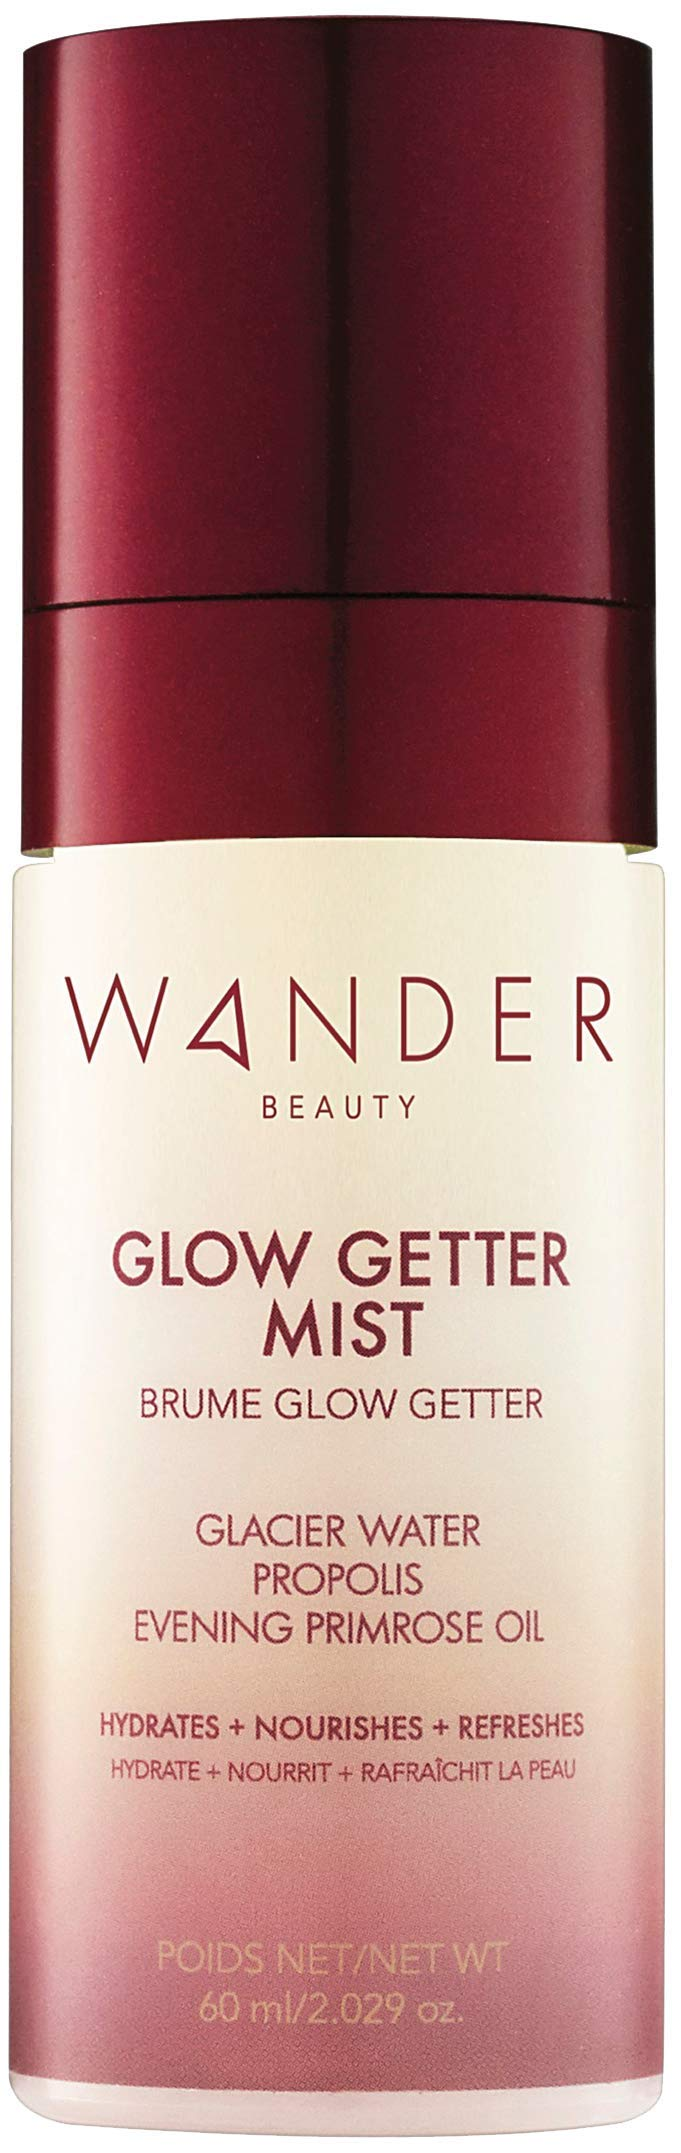 Wander Beauty Glow Getter Mist - Hydrating Rose Facial Finishing Spray with Minerals & Evening Primrose Oil (60ml / 2.03oz)